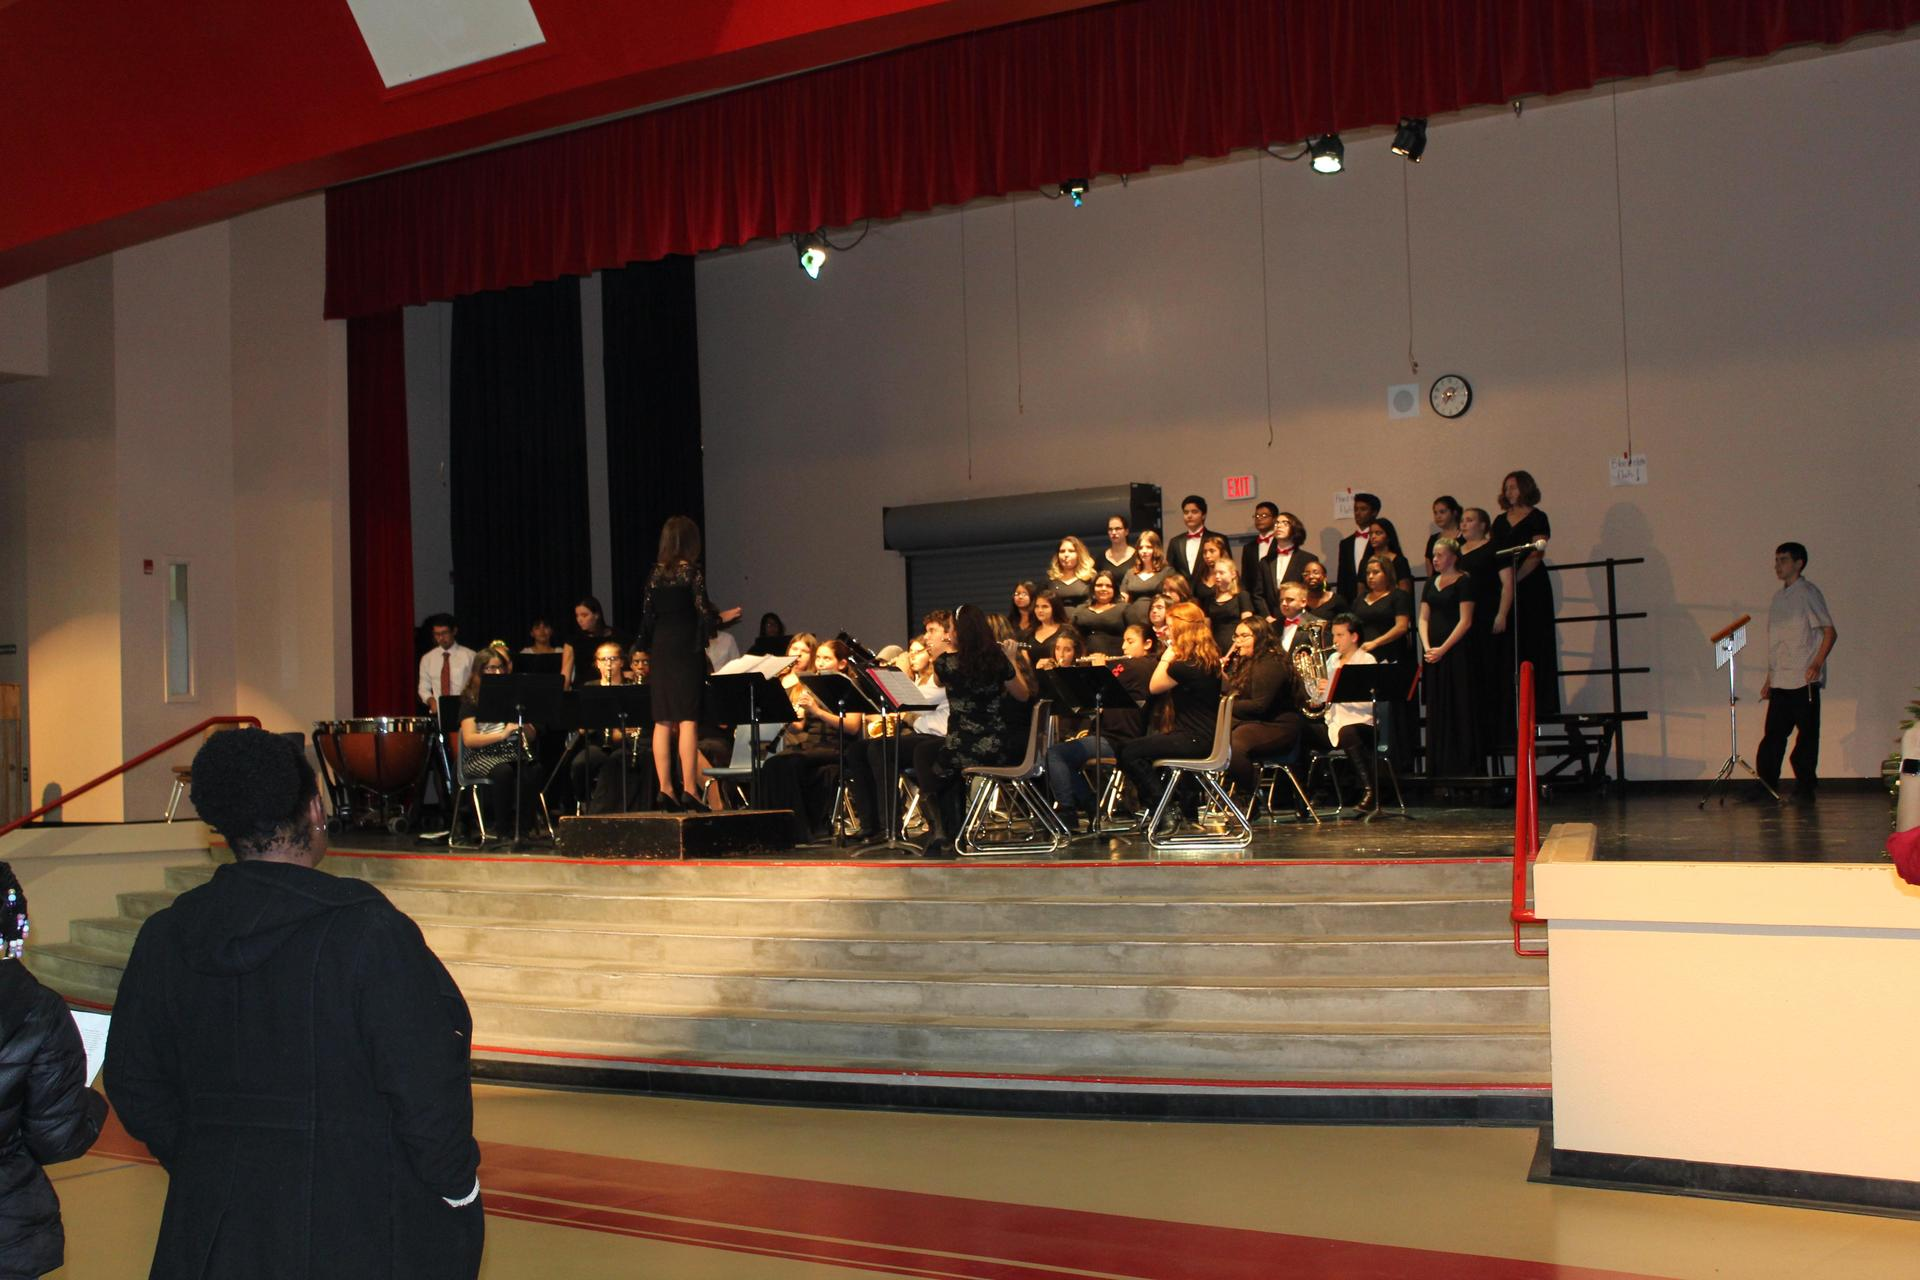 The CUHS Choir and Band perform together.